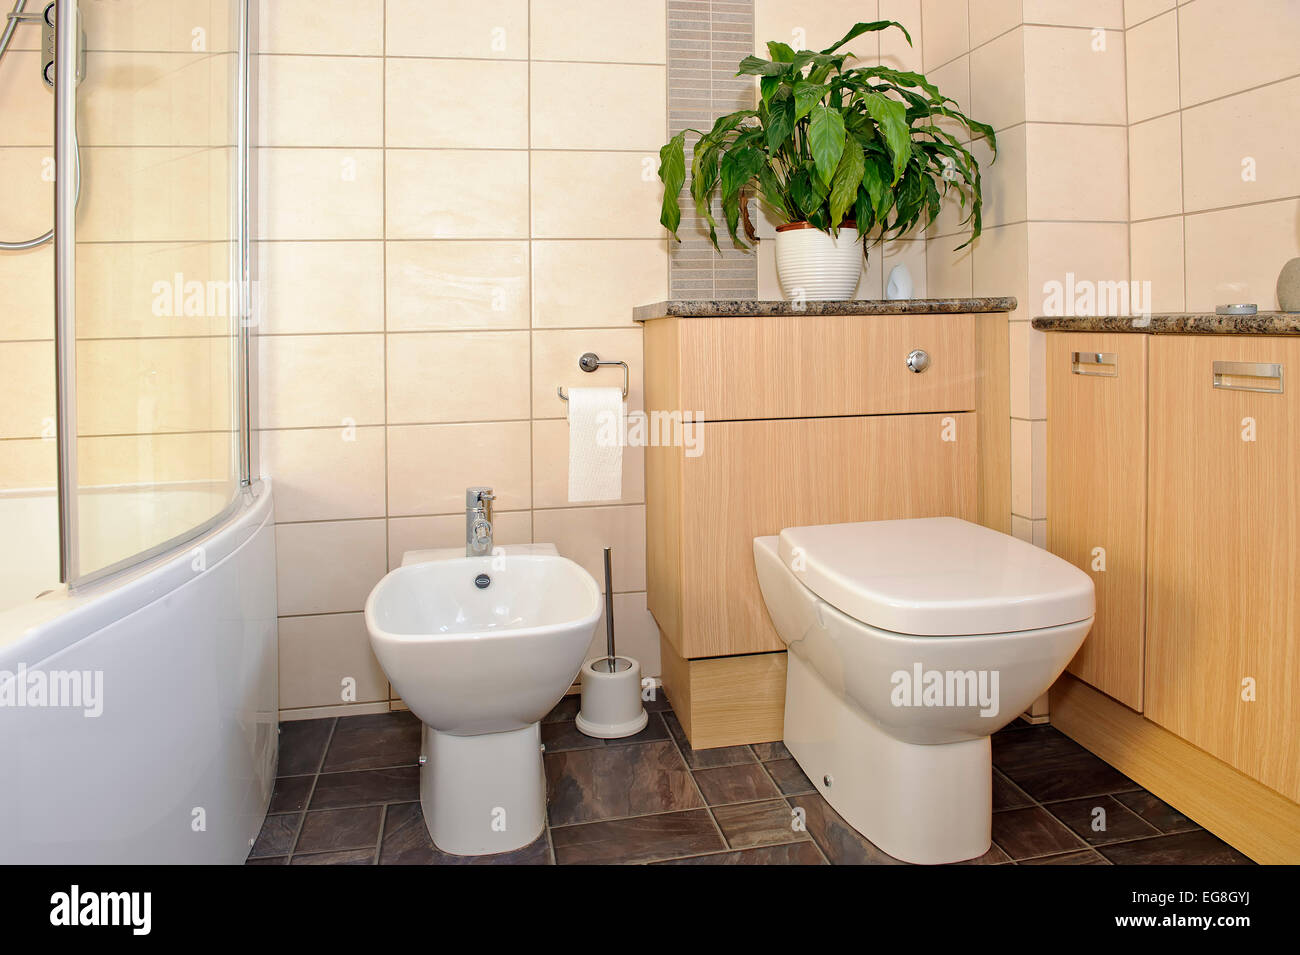 Bathroom Modern Toilet Bidet Stock Photos Bathroom Modern Toilet